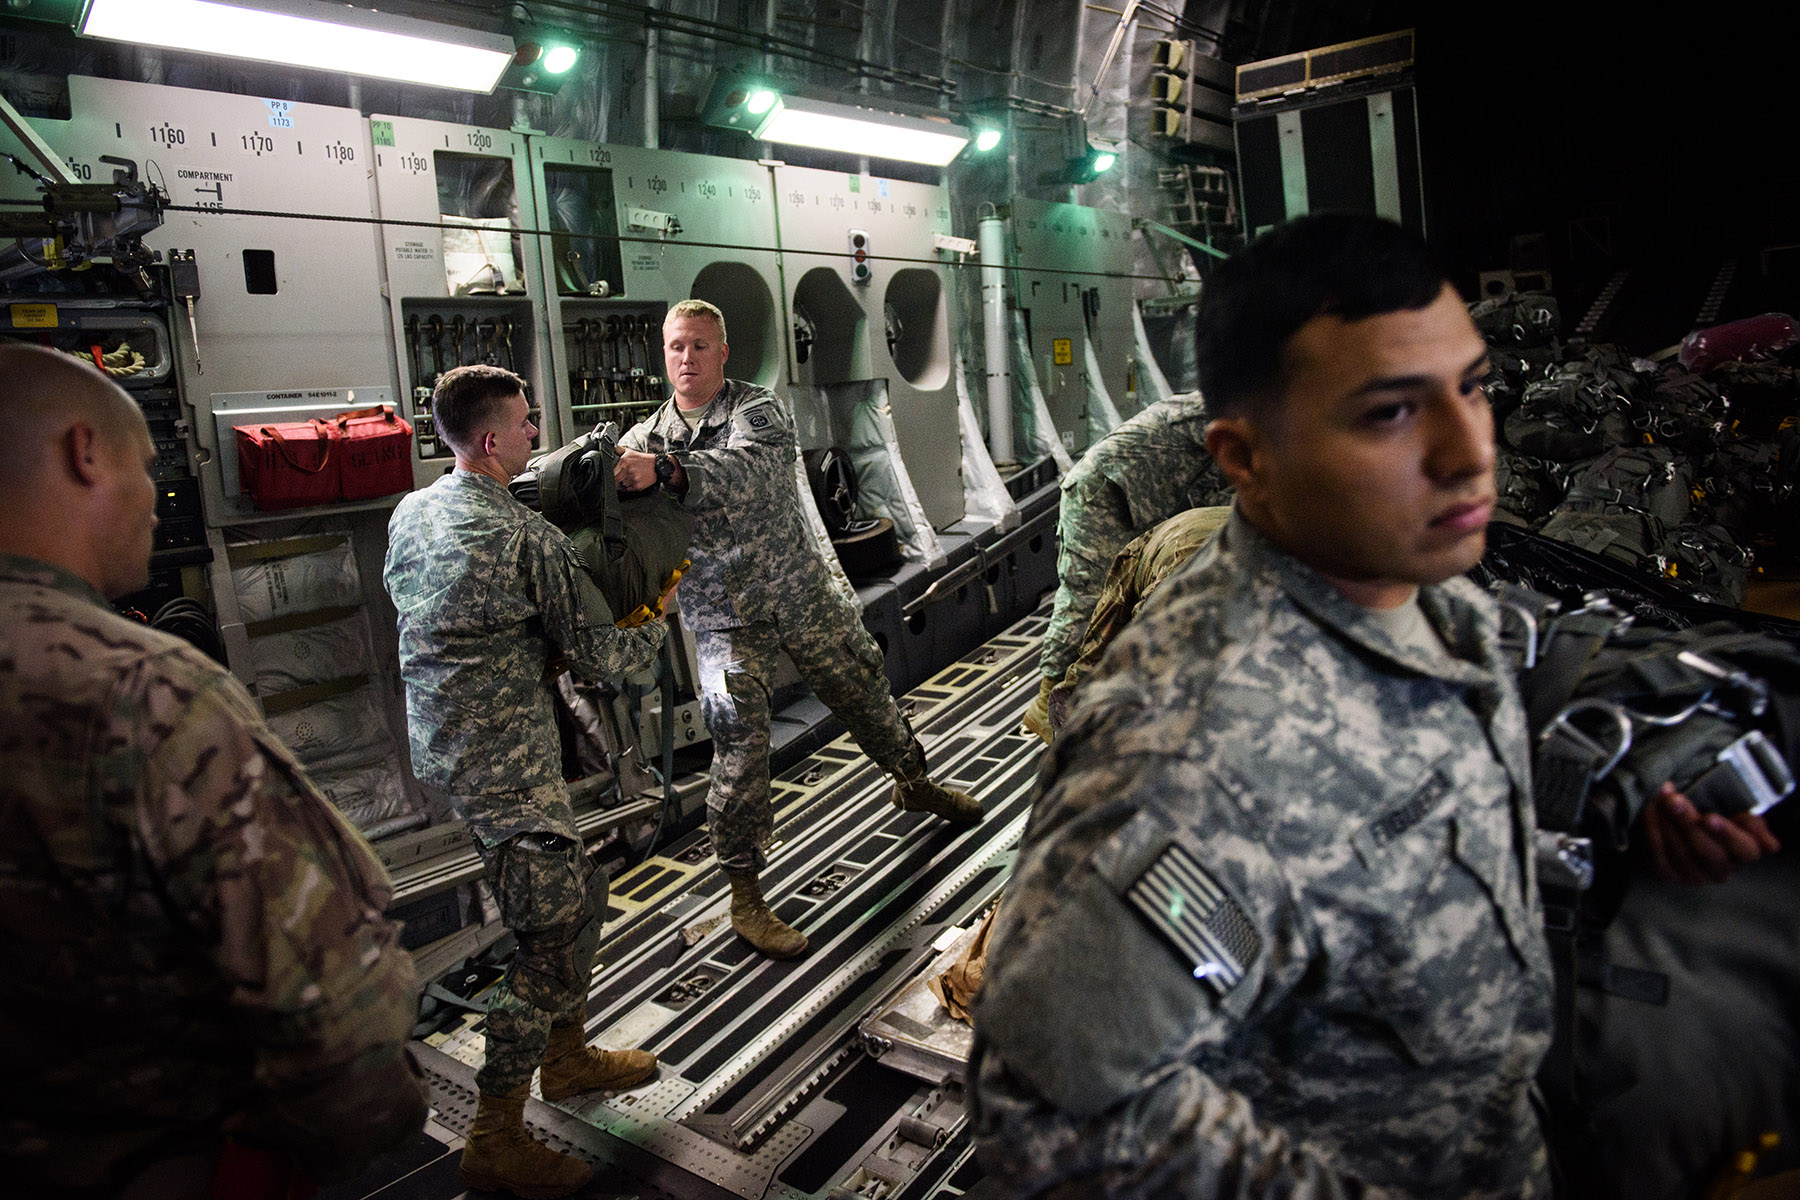 First Place | Multiple PhotosAndrew Craft, The Fayetteville ObserverParachutes are handed out to paratroopers for in flight rigging as they head for Zaragoza, Spain, Wednesday, Nov. 4, 2015, where they will jump in as part of Operation Trident Juncture 15. In support of Operations Trident Juncture 15 and Ultimate Reach 16, over 500 Paratroopers from the Division's 2nd Brigade Combat Team deployed from Pope Army Airfield, conducted in-flight rigging and executed a Joint Forcible Entry exercise in Zaragoza, Spain.